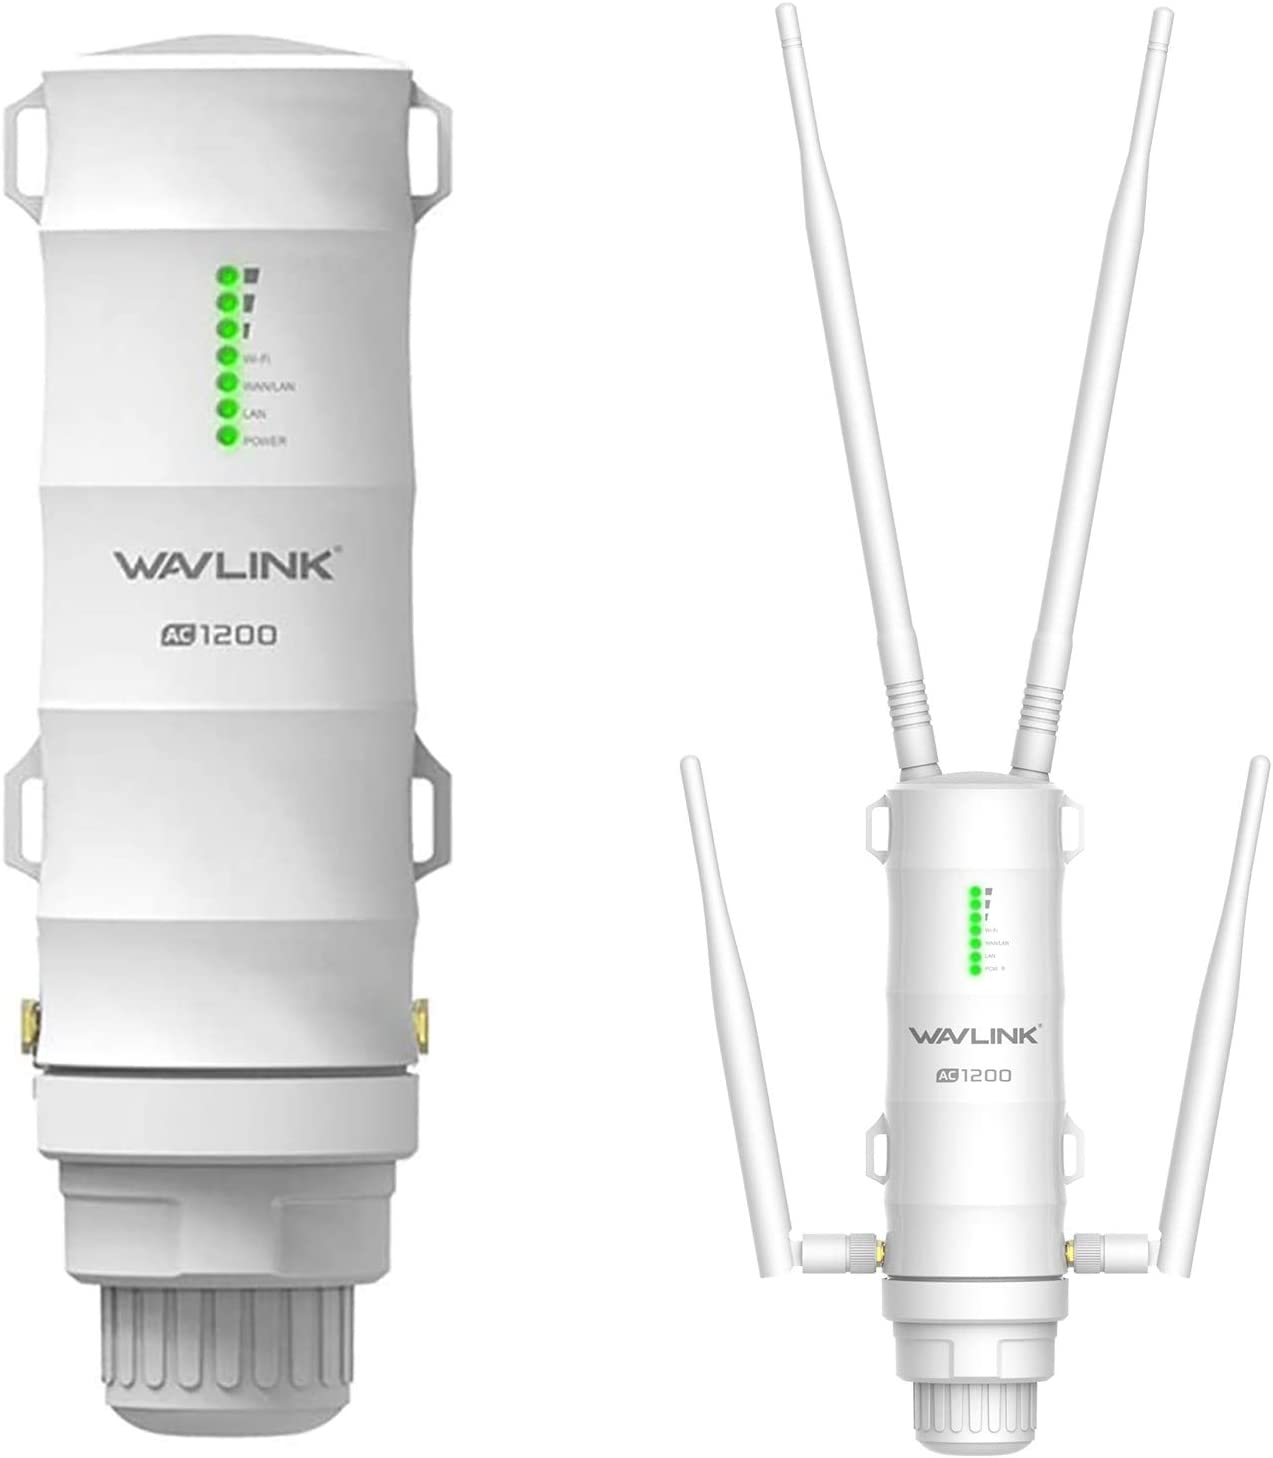 Dual Band 2.4+5G 1200Mbps 802.11AC Outside Weatherproof Wireless PoE AP//Router//WISP//Bridge Internet Booster Amplifier WN572HG3 3-in-1 AC1200 Outdoor WiFi Extender//Access Point//Repeater in 4 Antennas